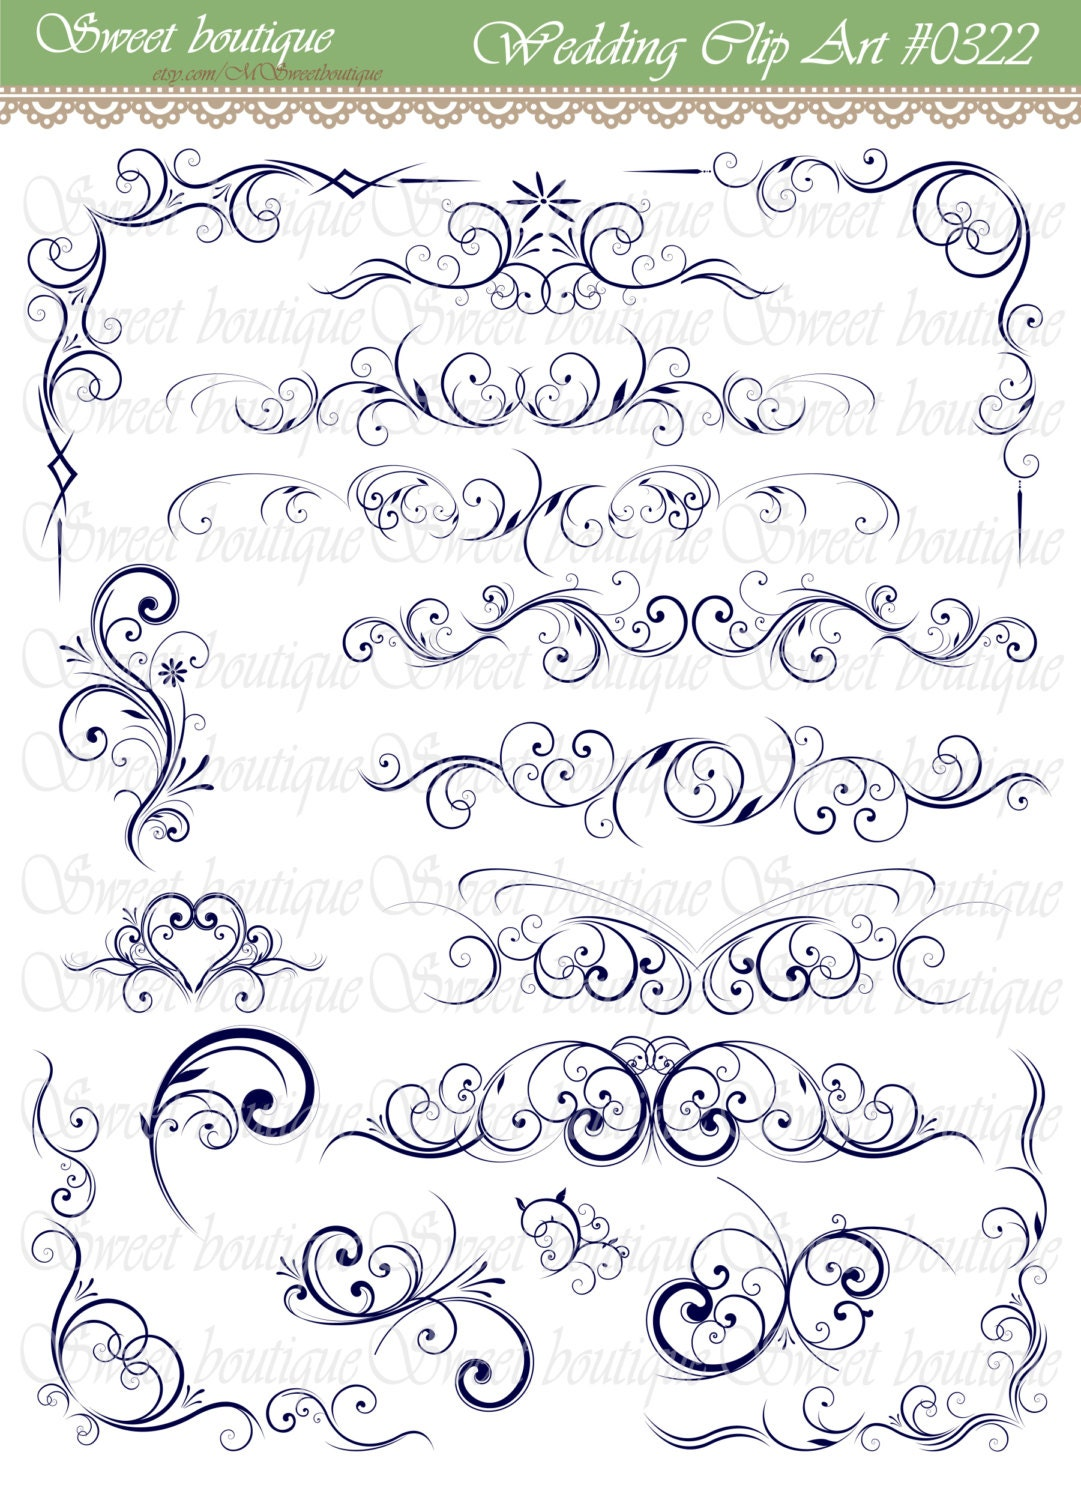 Decorative Designs For Invitations Designs Diy Invitations